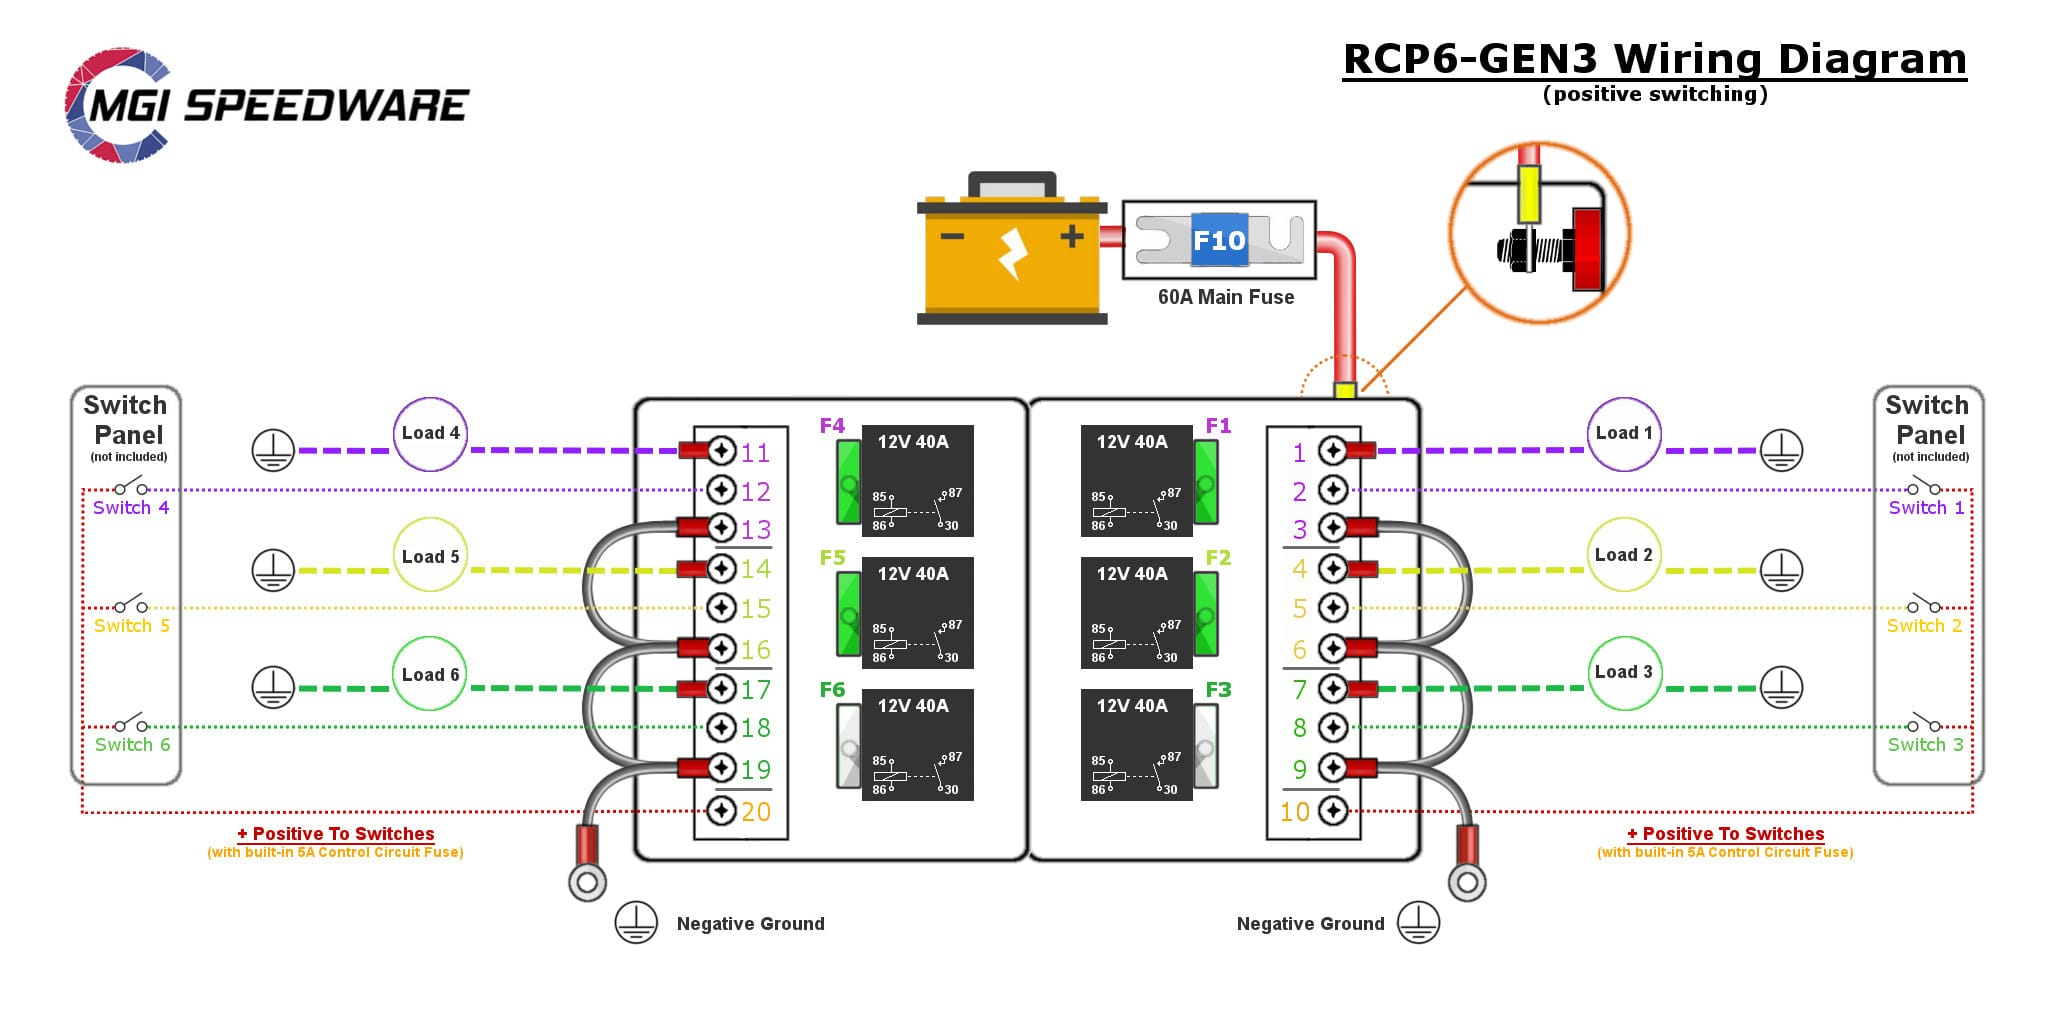 DIAGRAM] Wiring Diagram Spst Contacts 3 FULL Version HD Quality Contacts 3  - BENDIAGRAMS.BIENNALEANGELOGAROFALO.ITFreE OnlinE WirinG DiaGramS - Best Free Open Source Diagram DesigNN -  biennaleangelogarofalo.it